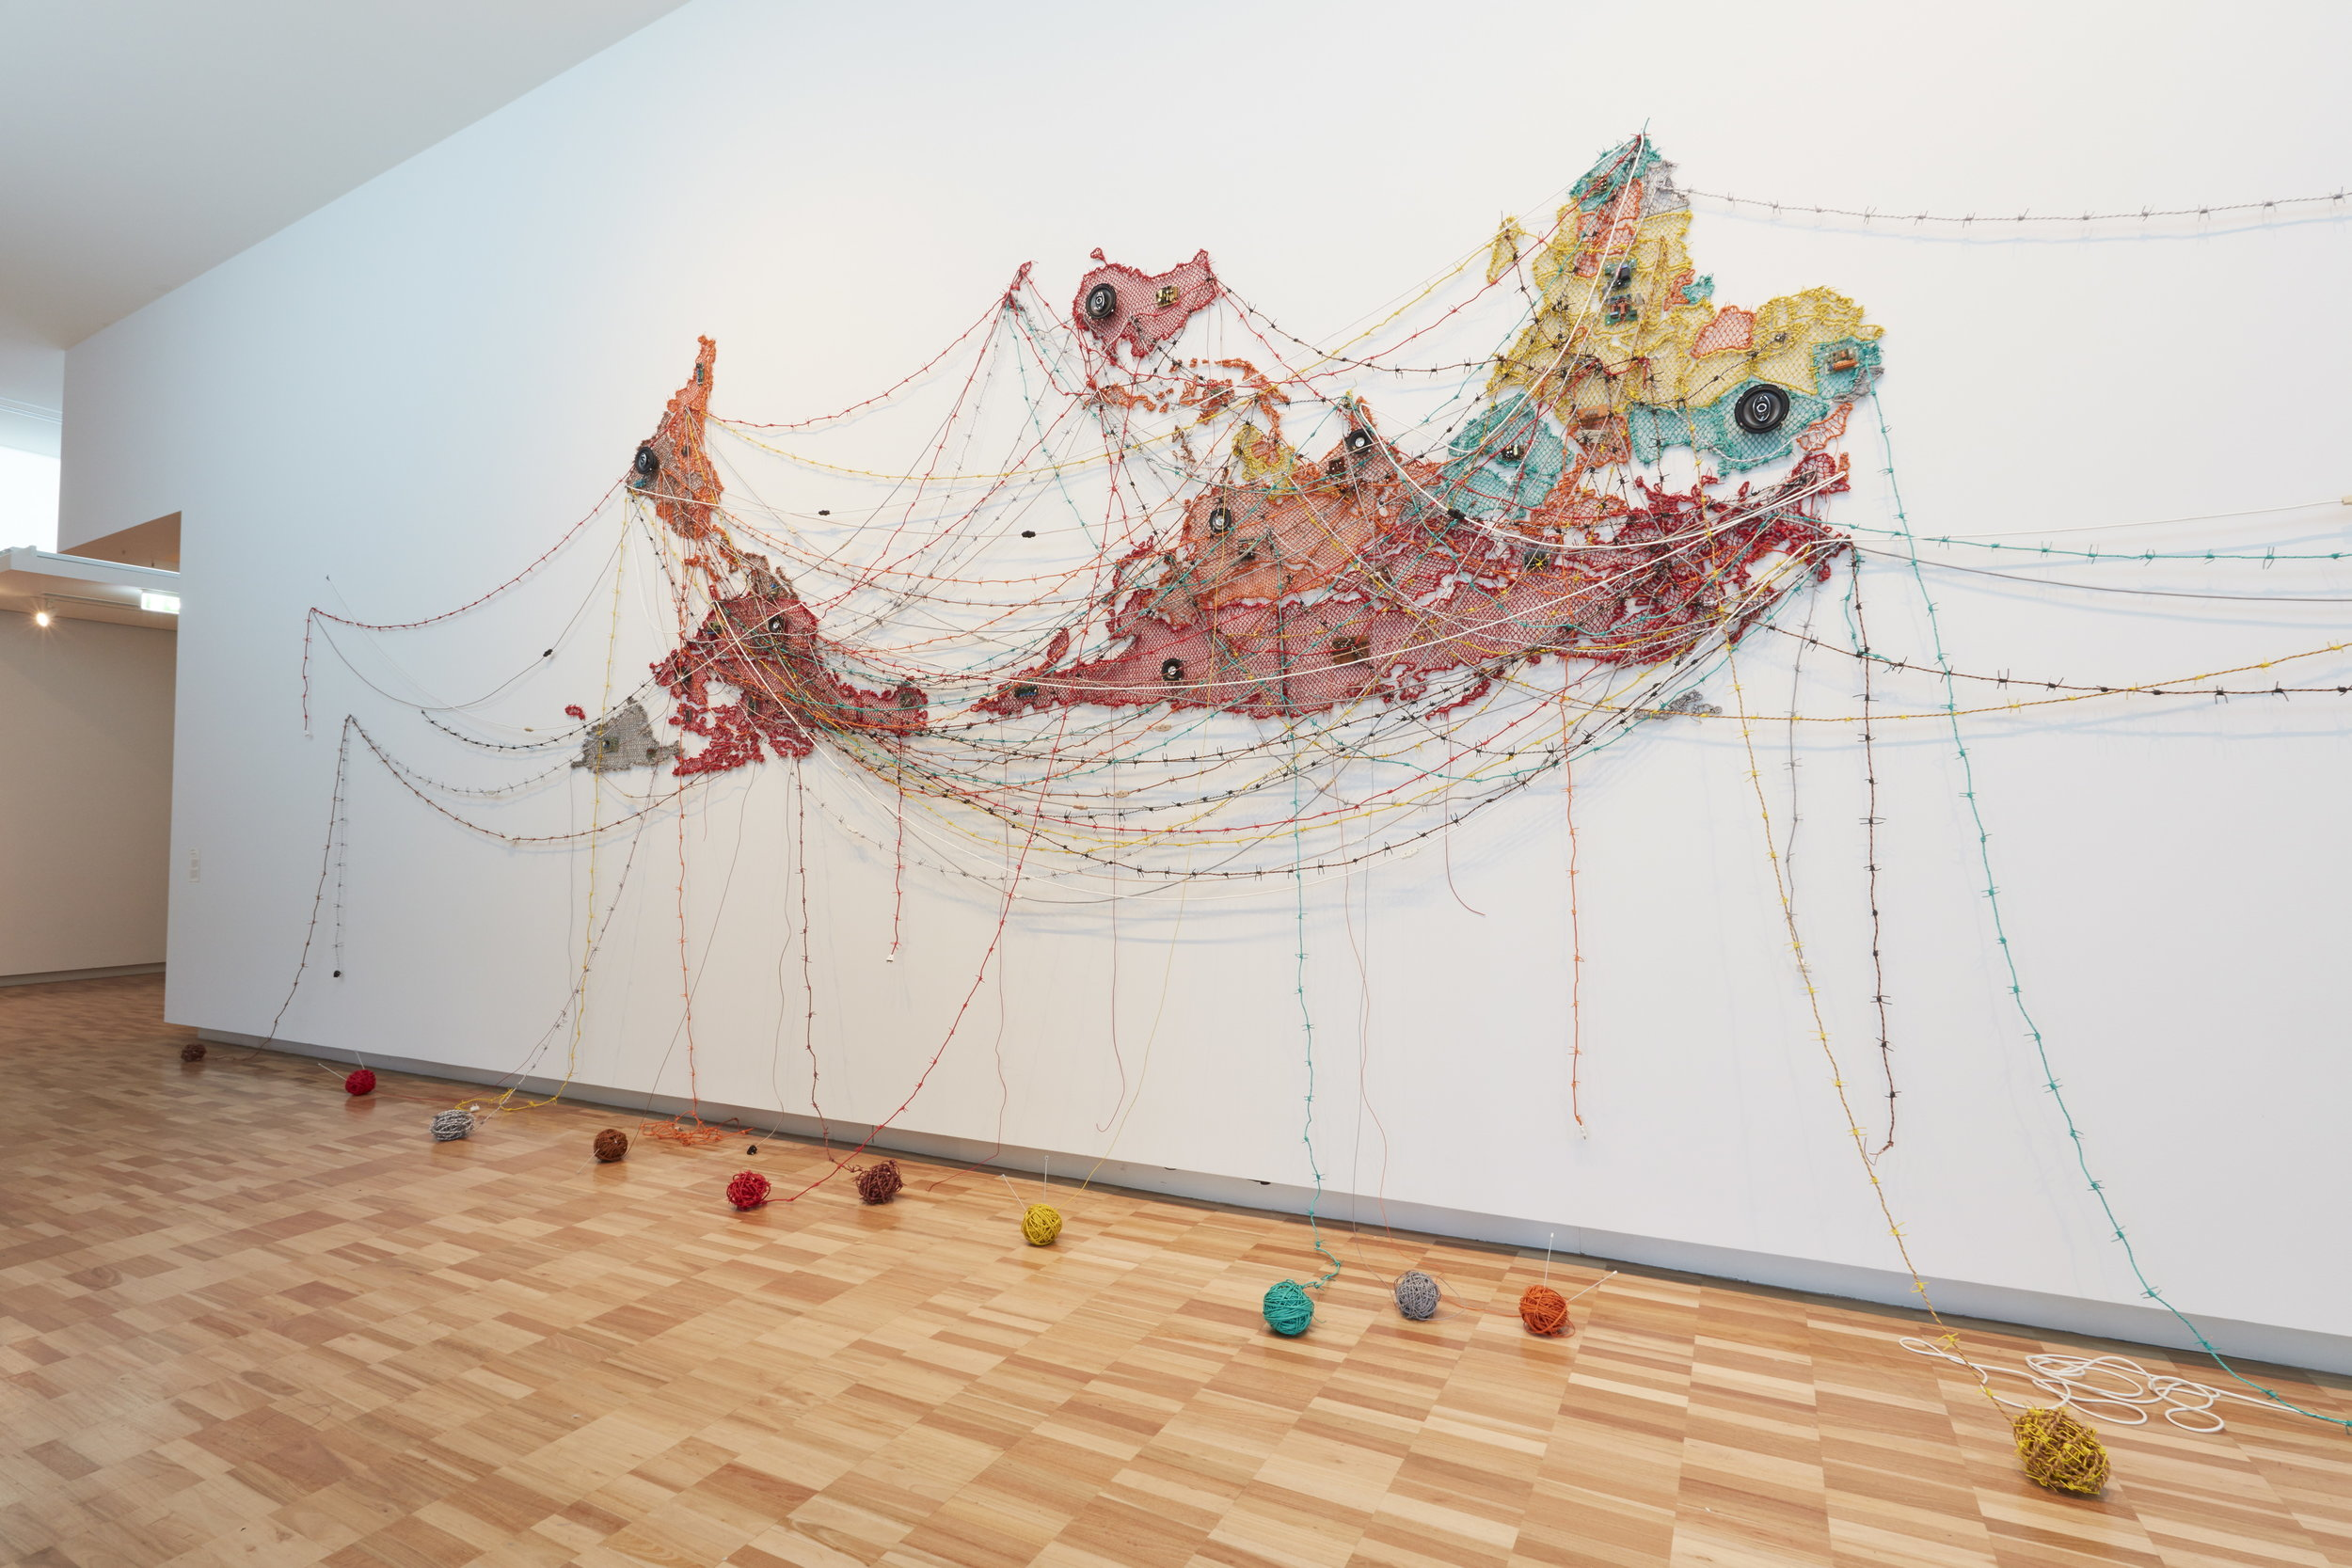 Woven Chronicle (2018) by Reena Saini Kallat. Courtesy of AGNSW, Mim Stirling.